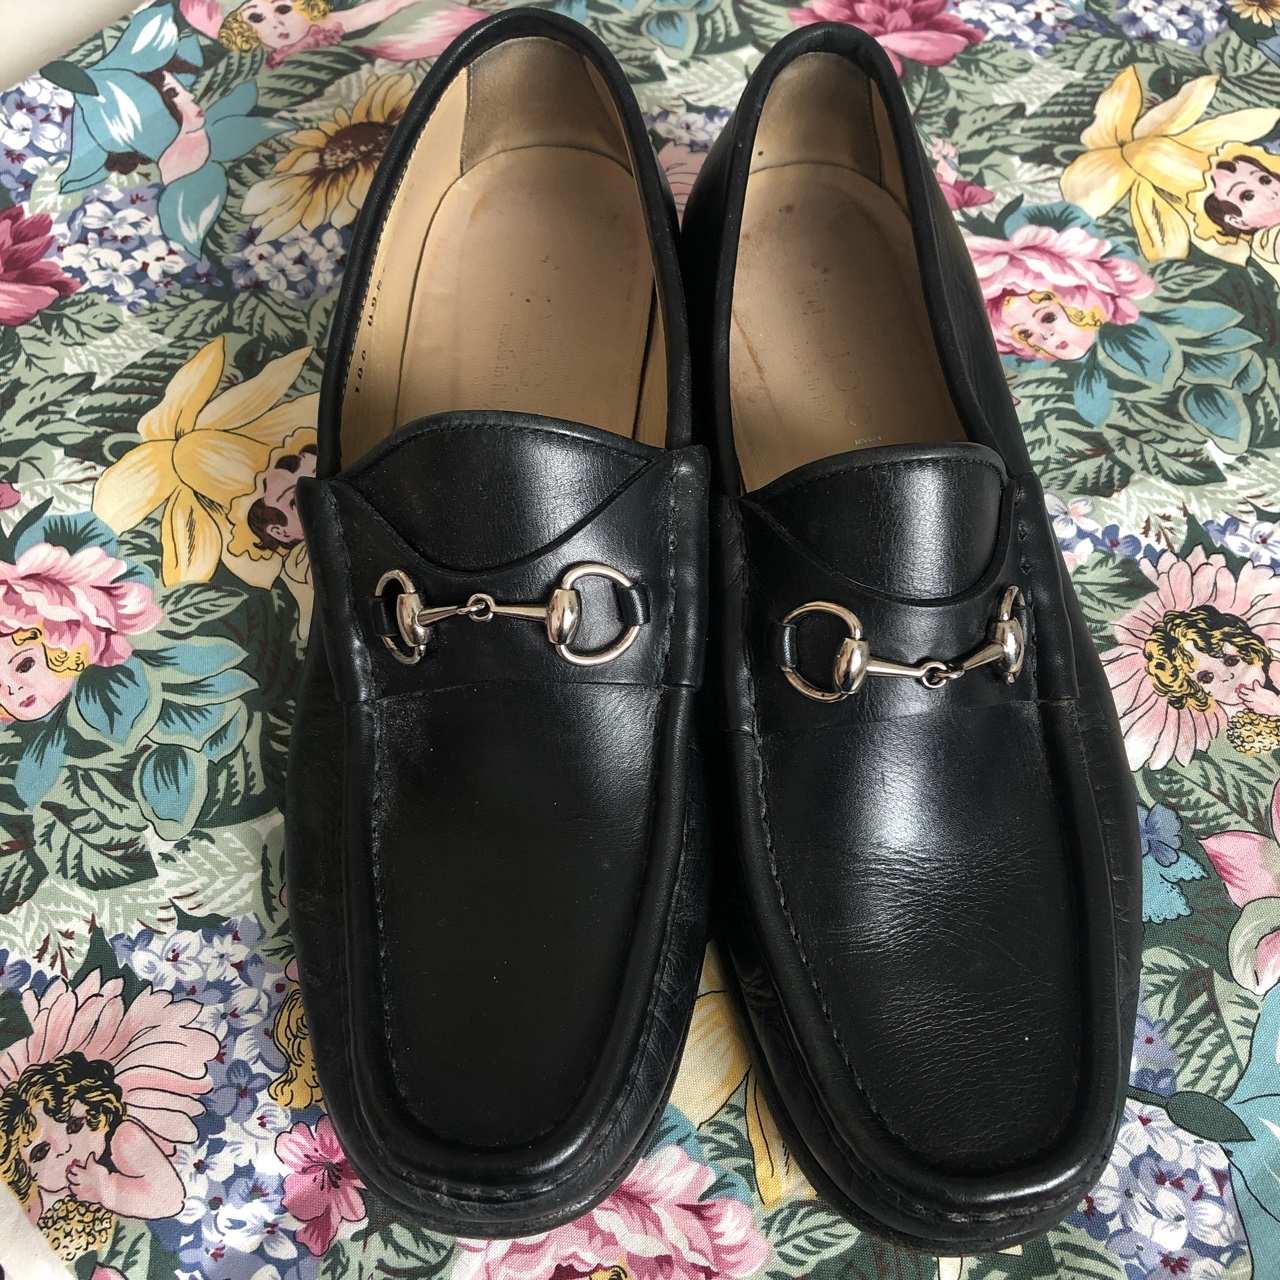 Product Image 1 - Vintage Black Leather Gucci Loafers